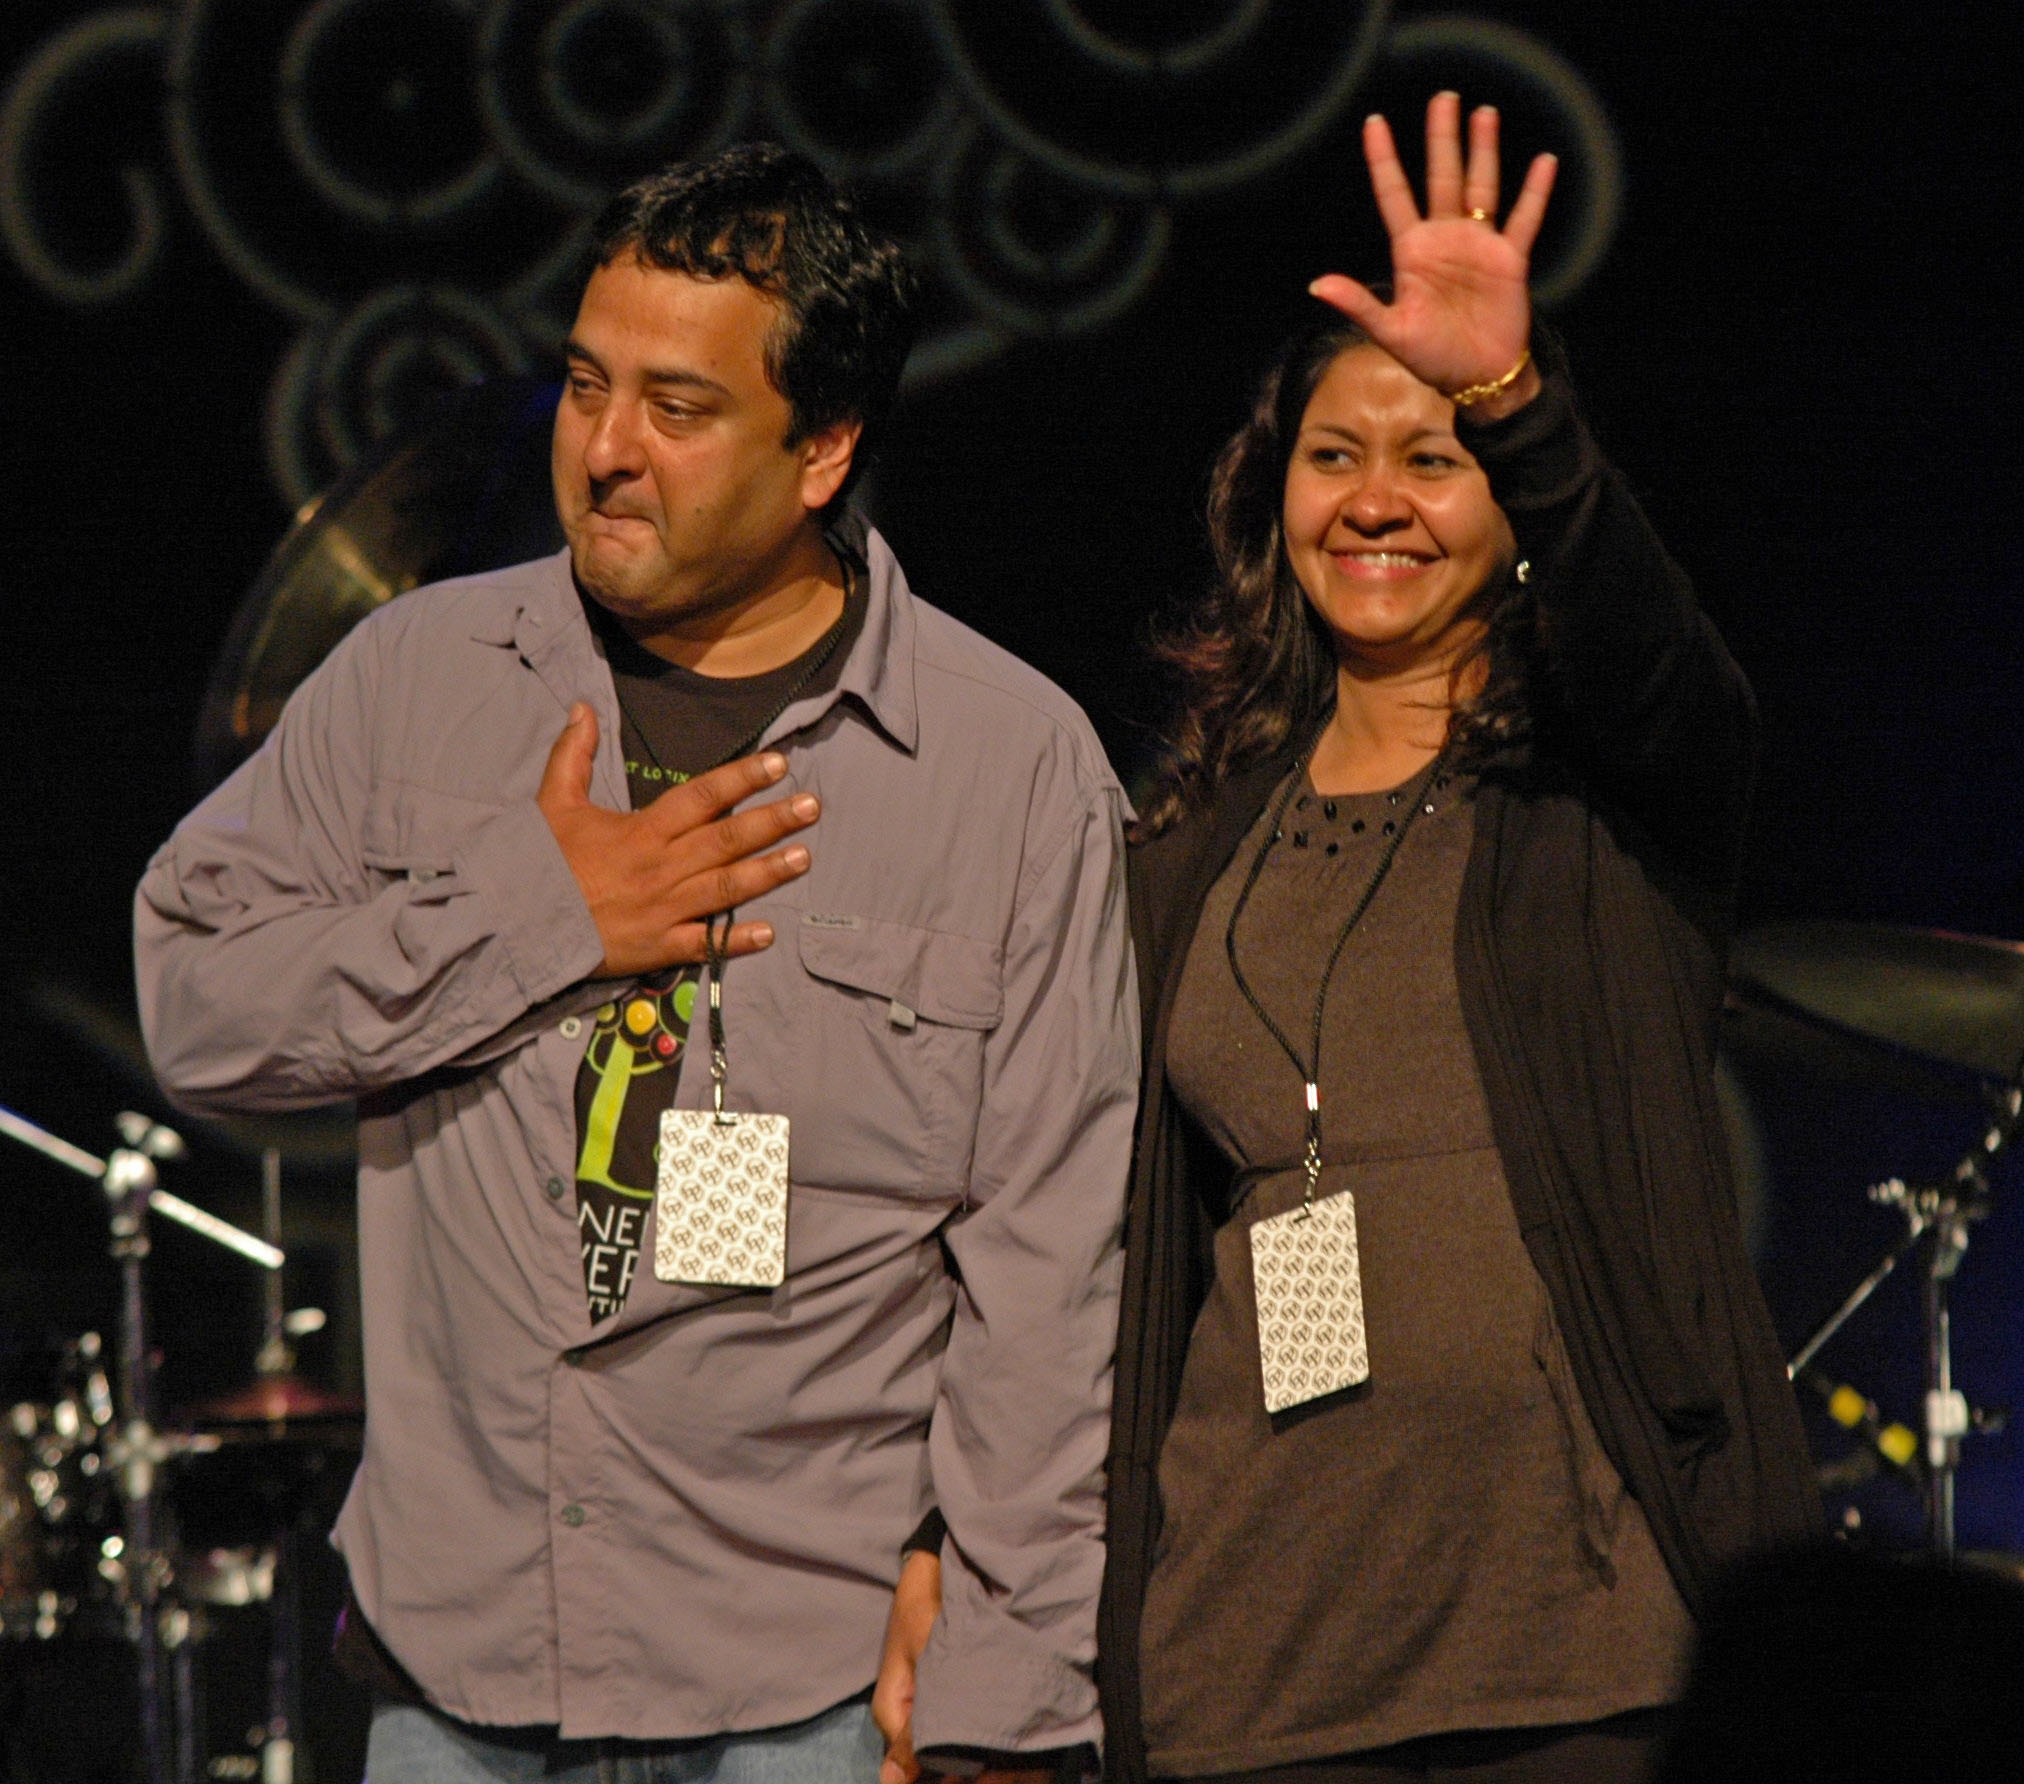 Abstract Logix's Souvik and Shweta Dutta, at the 2010 New Universe Music Festival